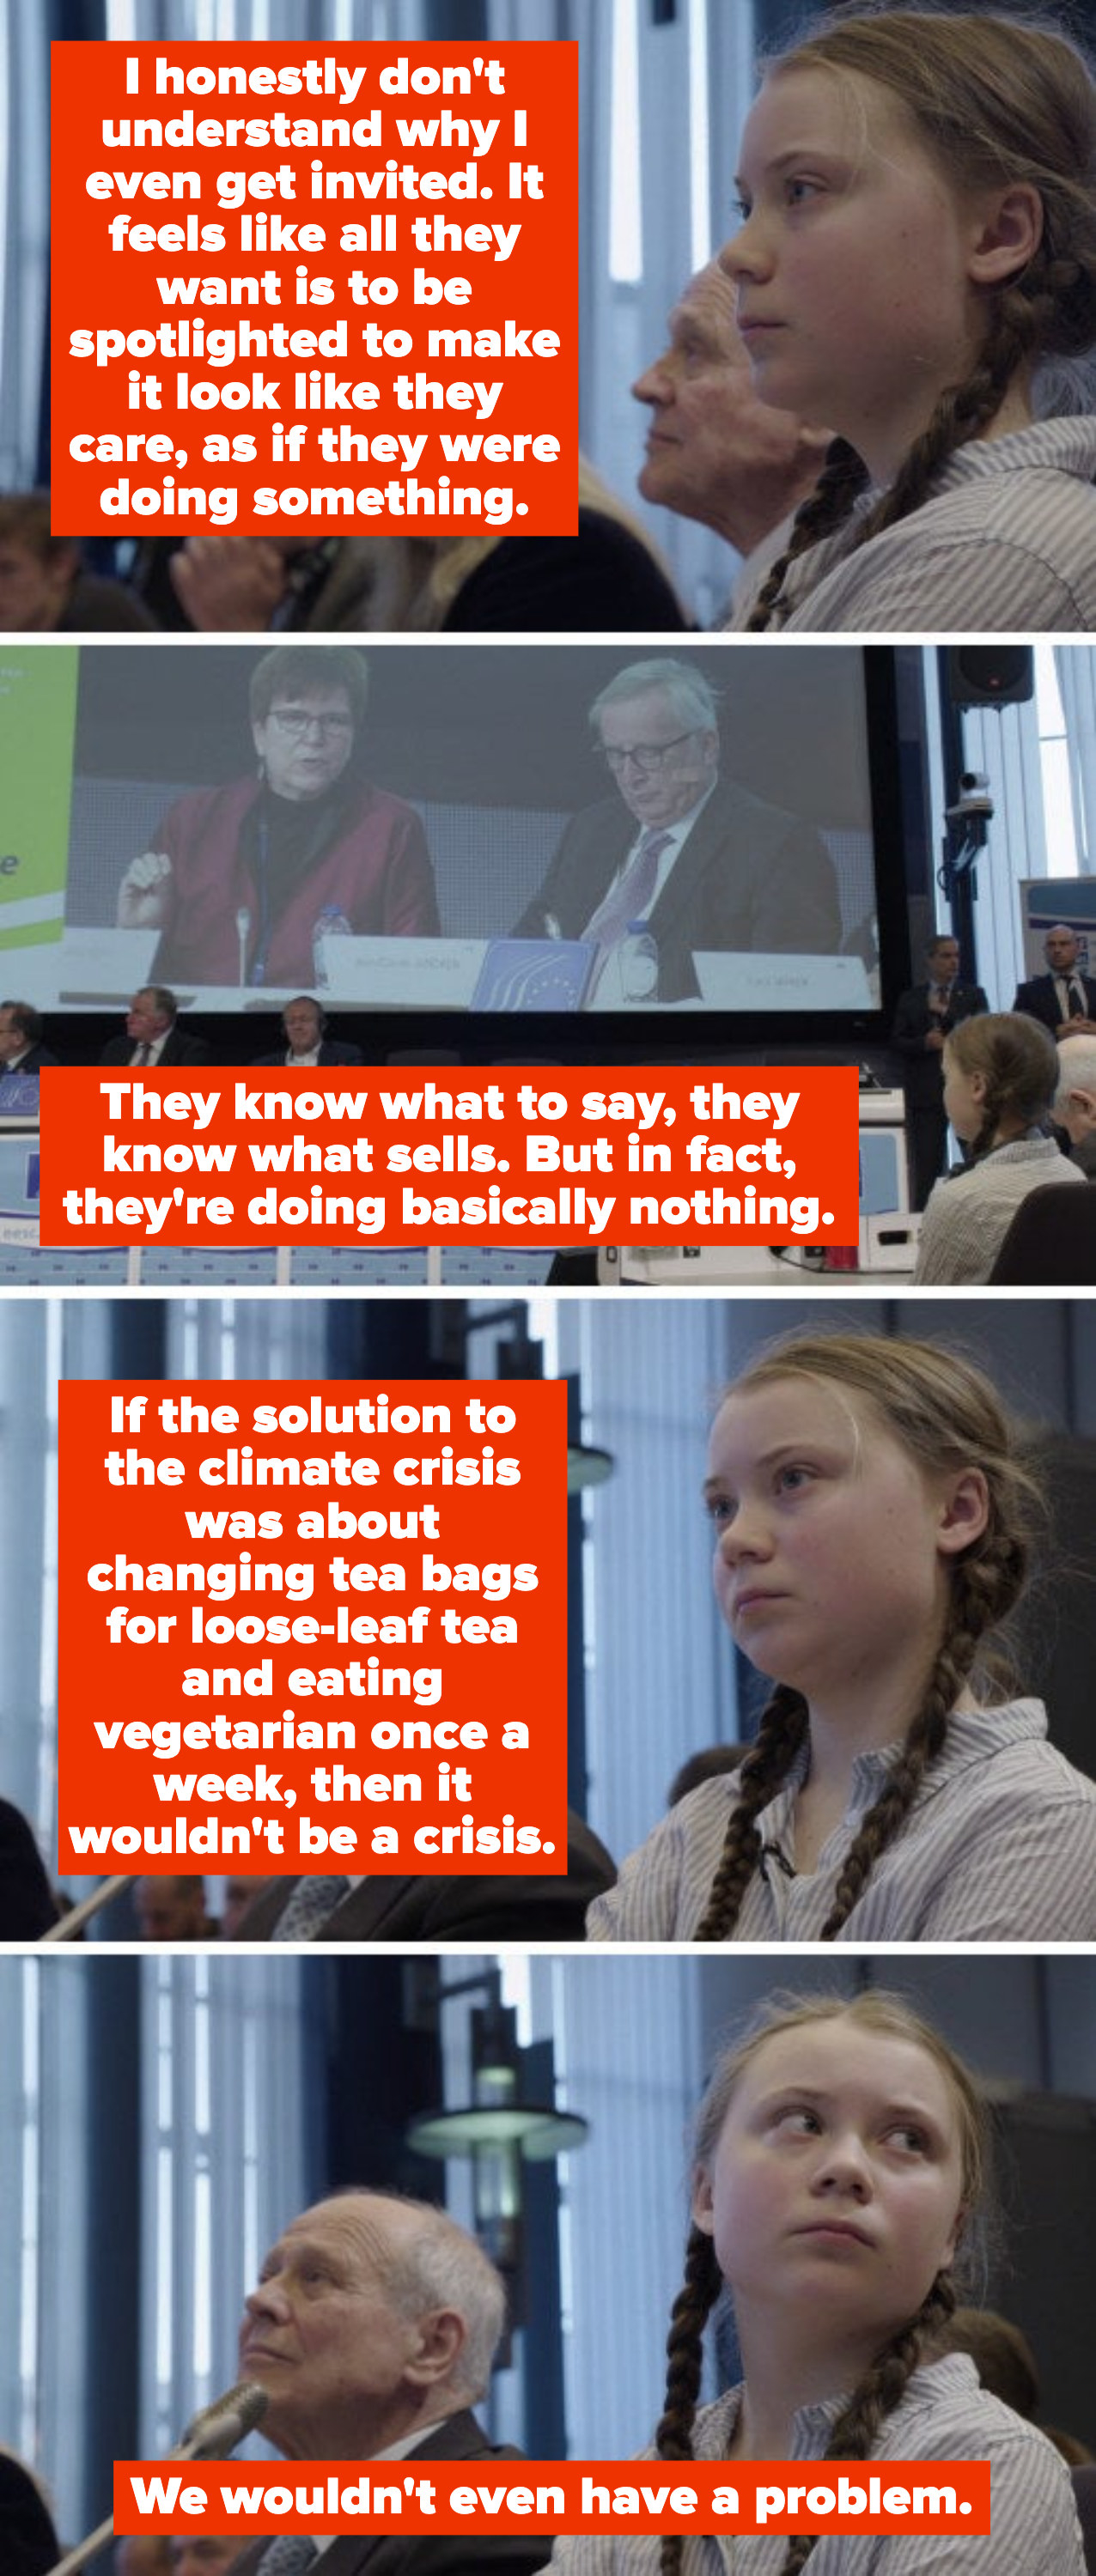 """Greta Thunberg describing her frustration with politicians' activism about the climate crisis, saying: """"If the solution to the climate crisis was about changing tea bags for loose-leaf tea and eating vegetarian once a week, then it wouldn't be a crisis"""""""